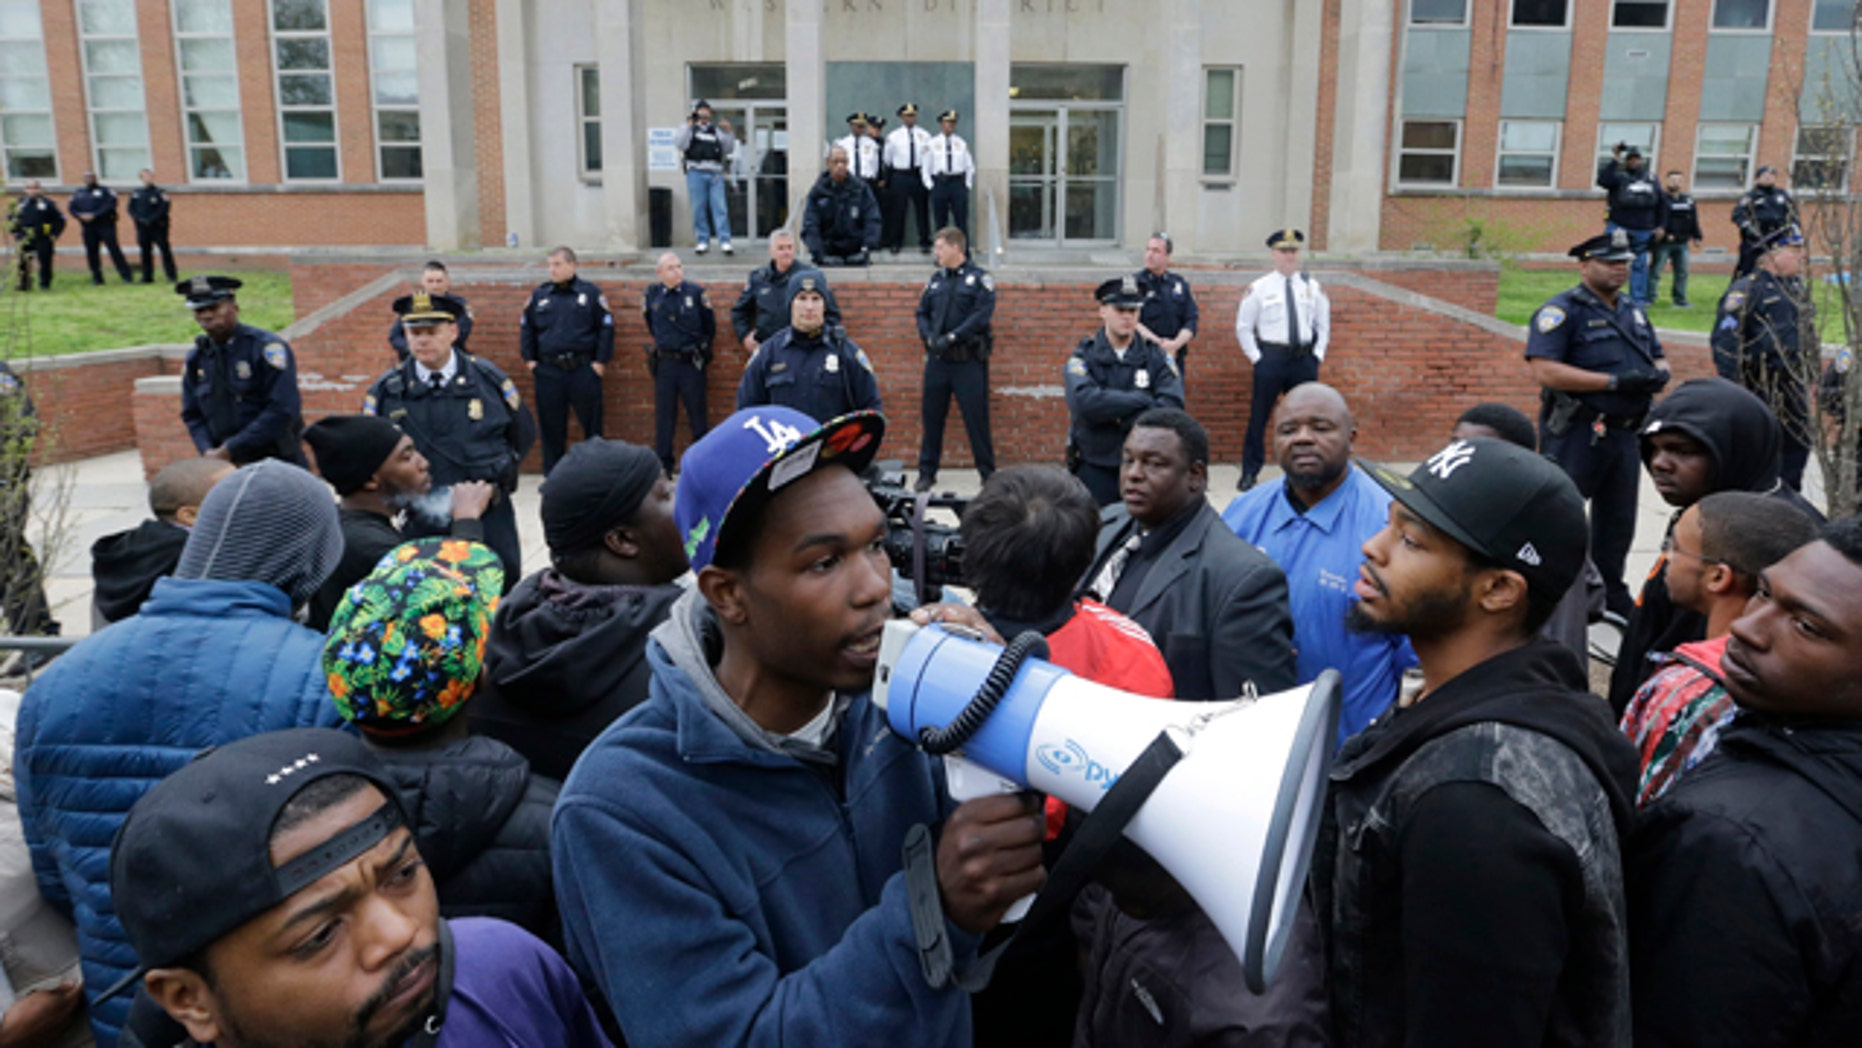 April 23, 2015: Protesters for Freddie Gray stand outside the Baltimore Police Department's Western District police station. Gray died from spinal injuries about a week after he was arrested and transported in a police van. (AP Photo/Patrick Semansky)